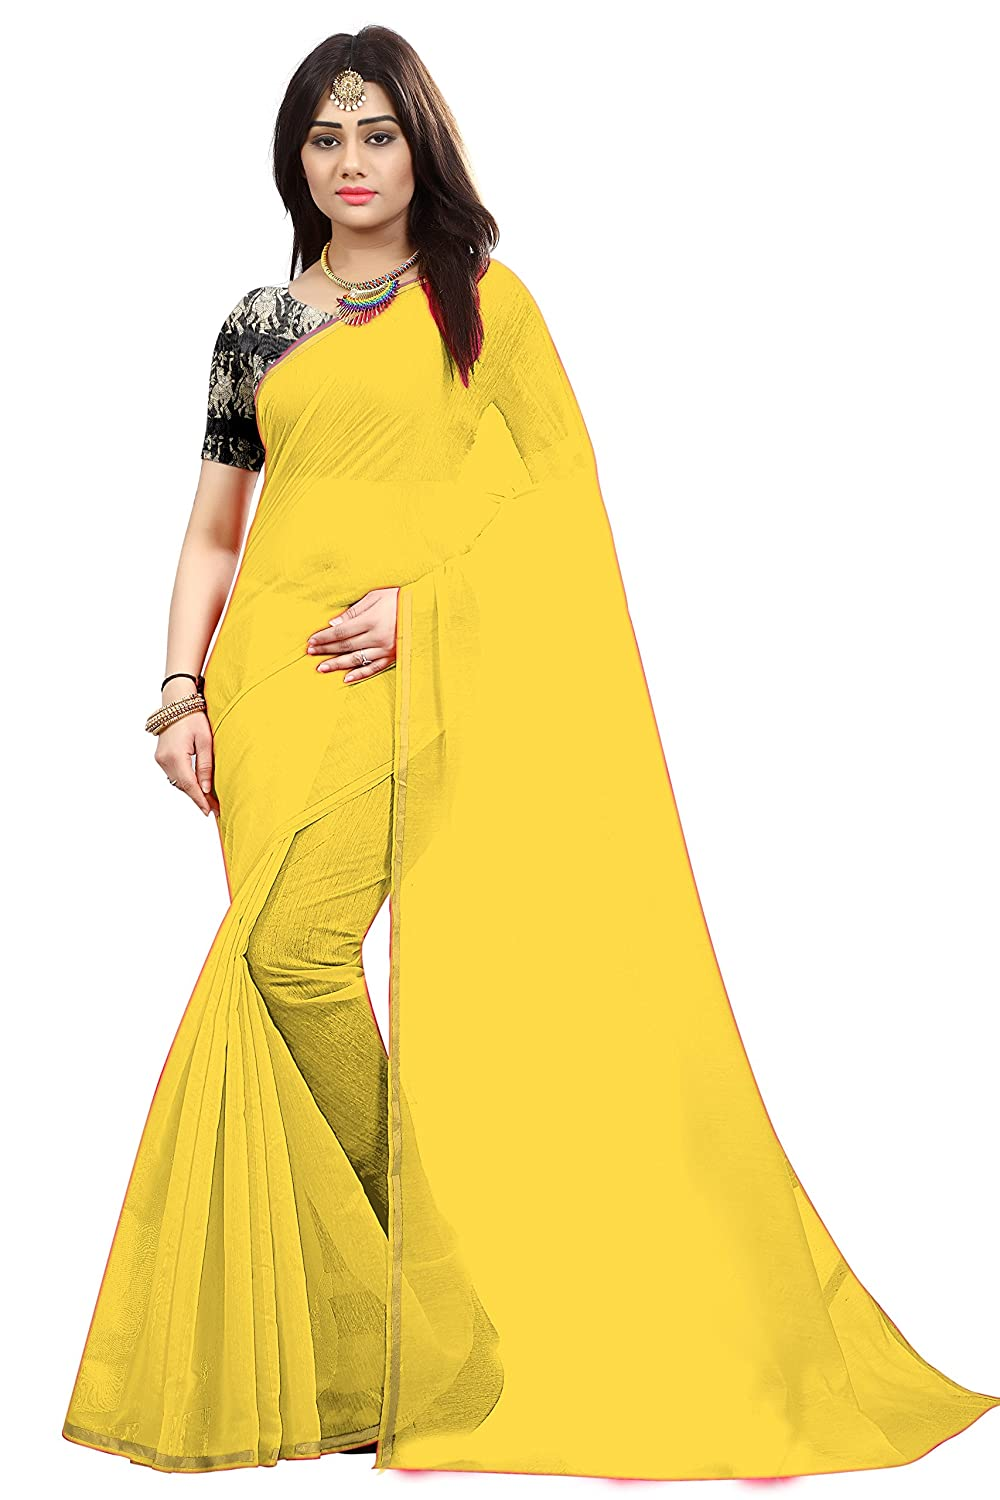 7bb4c584ae79ef Radiance Star Women s Chanderi Cotton Yellow Color Plain Saree With  Benglori Silk Blouse Piece  Amazon.in  Clothing   Accessories